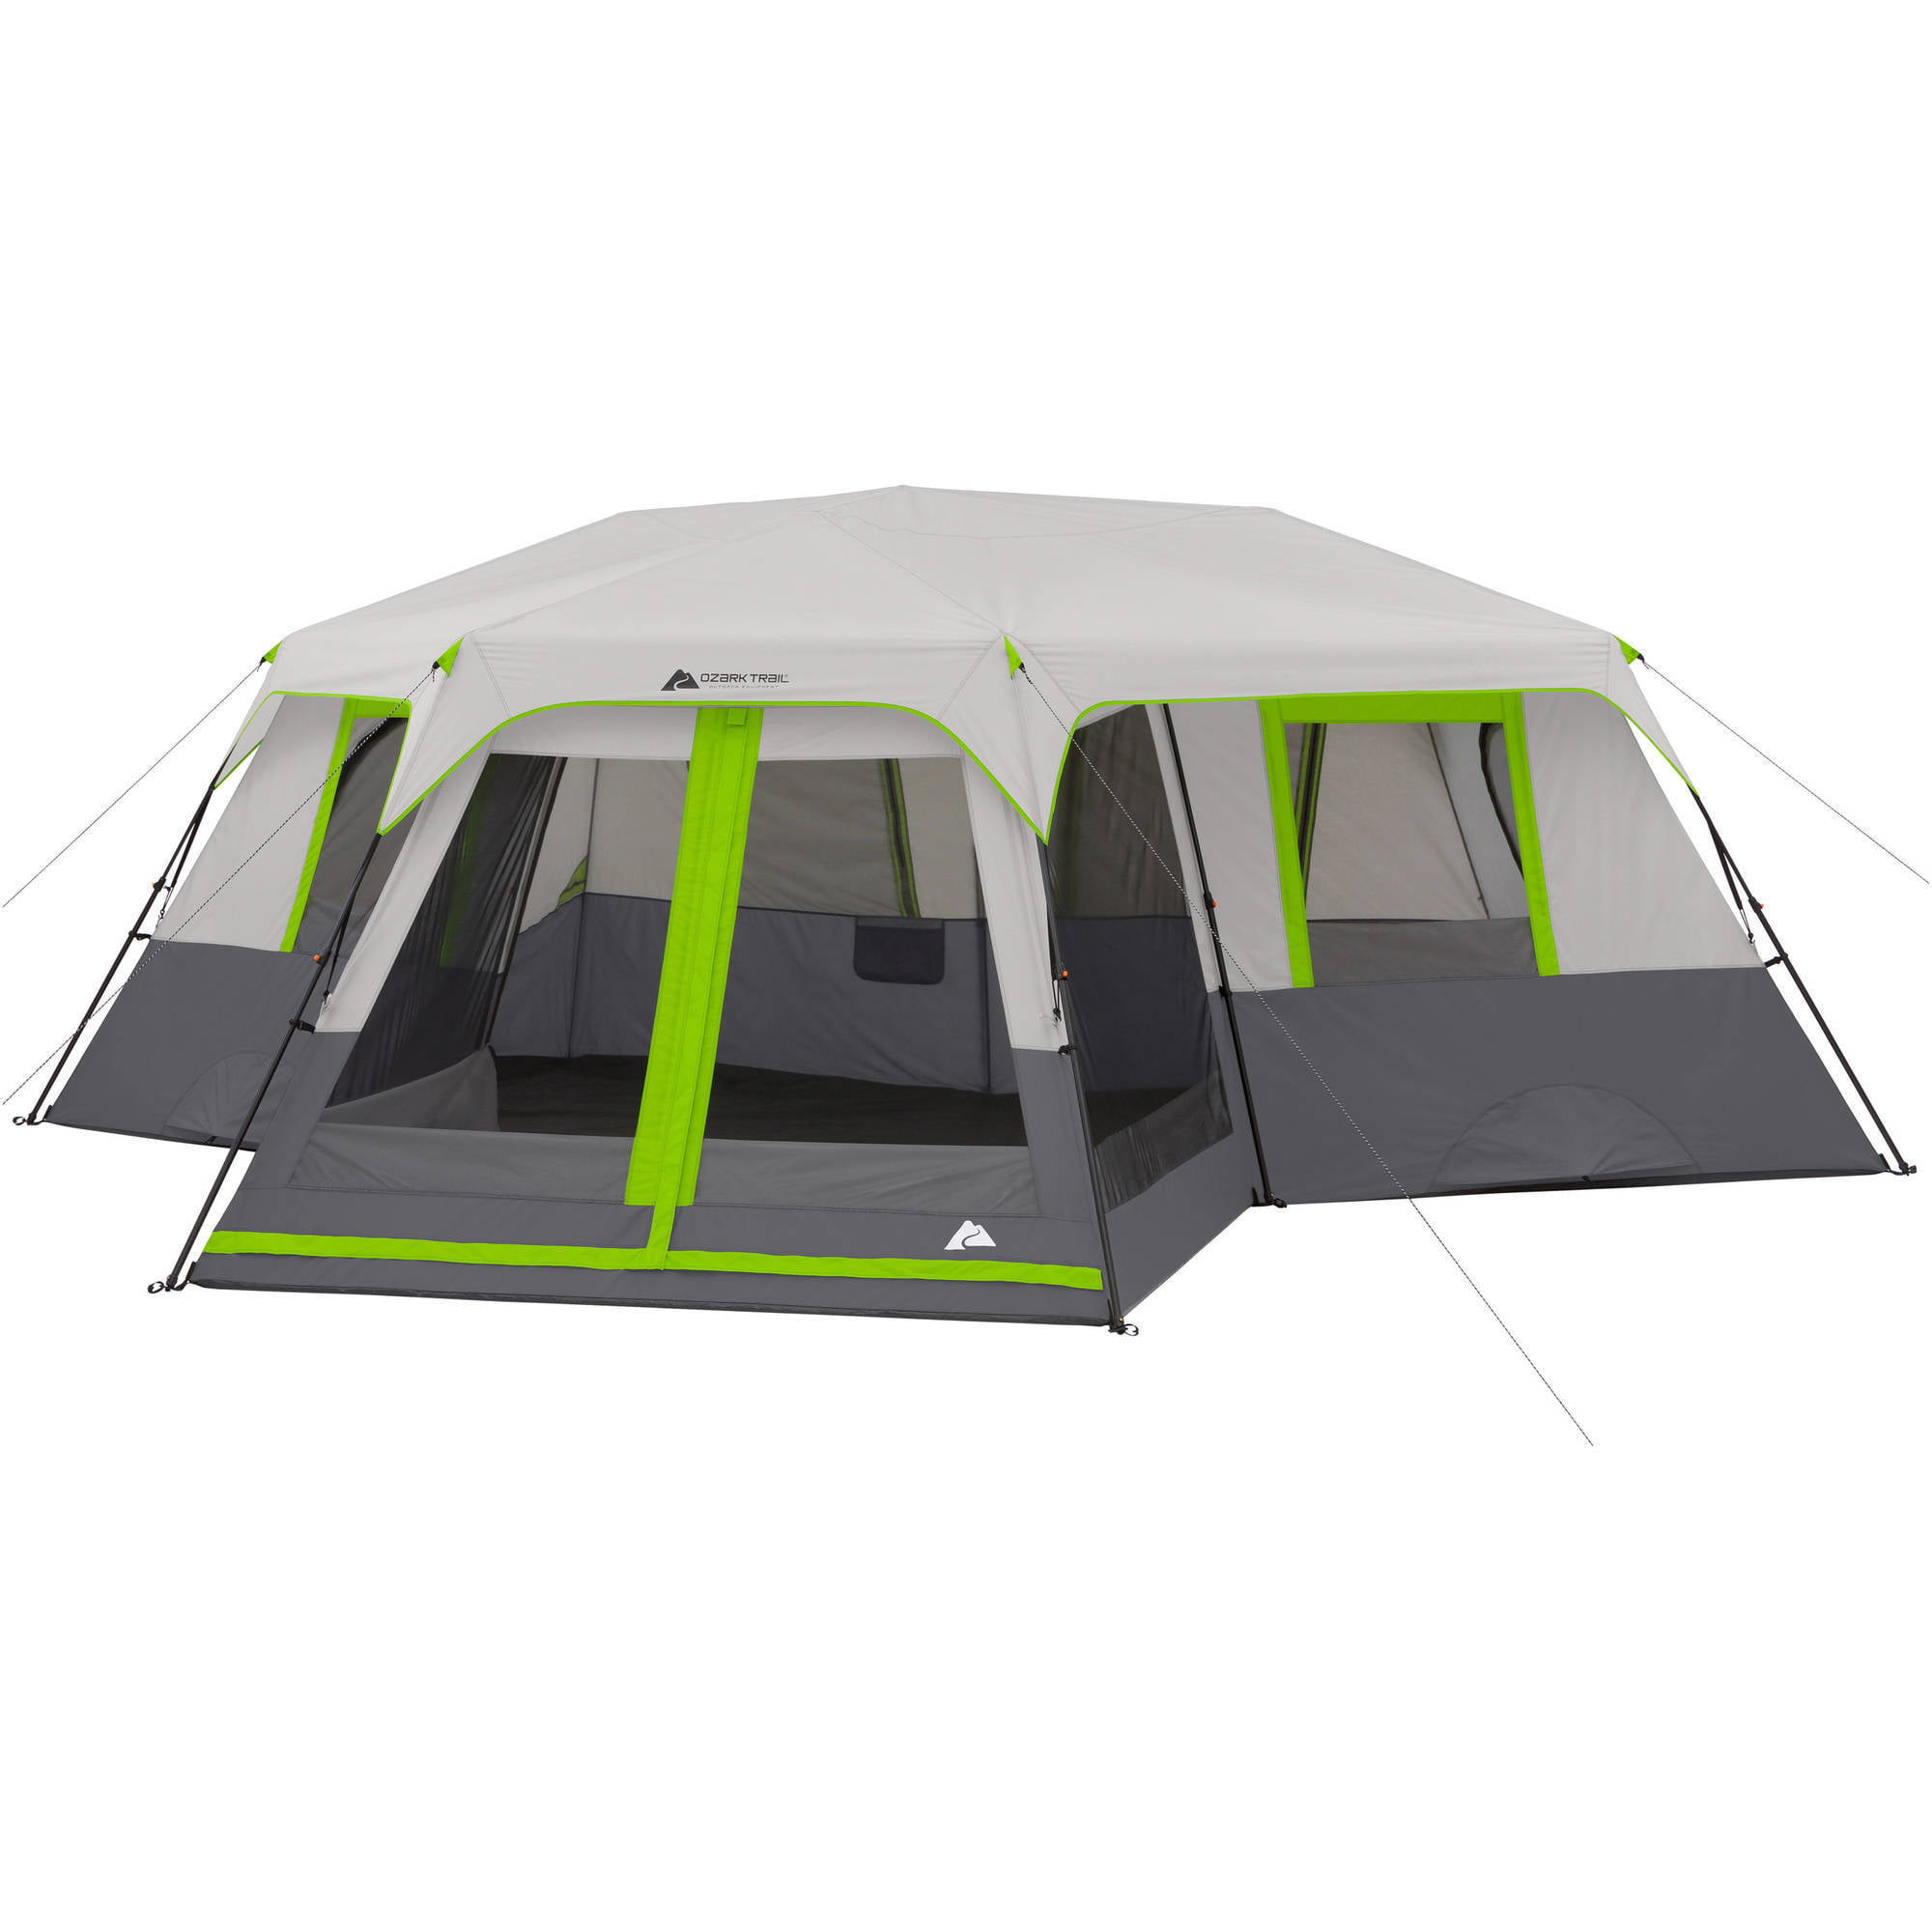 Ozark Trail 12-Person 3 Room Instant Cabin Tent with Screen Room - Walmart.com  sc 1 st  Walmart & Ozark Trail 12-Person 3 Room Instant Cabin Tent with Screen Room ...